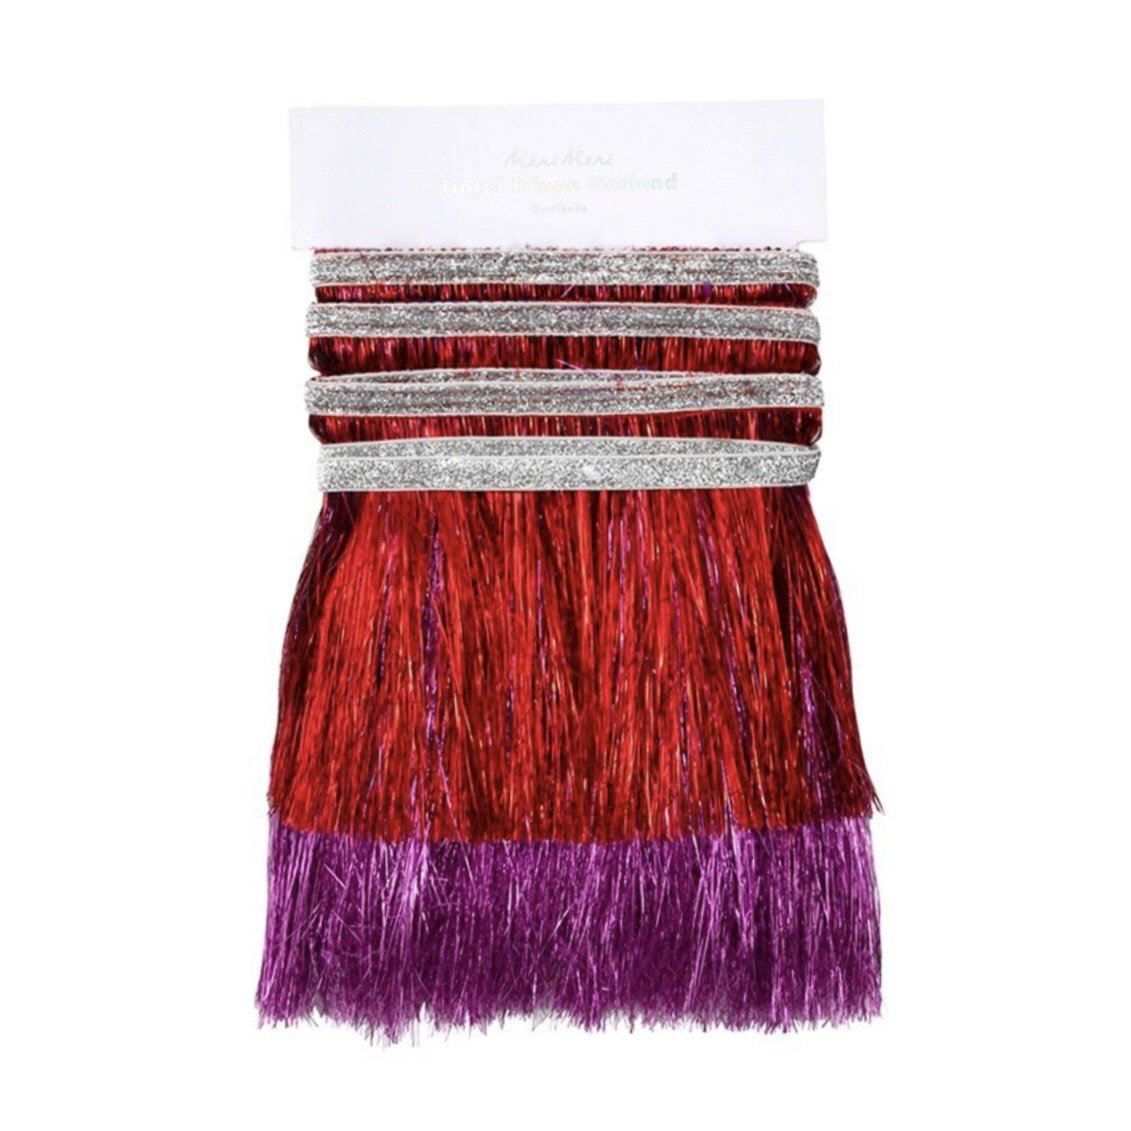 FRINGE GARLAND - RED + PINK